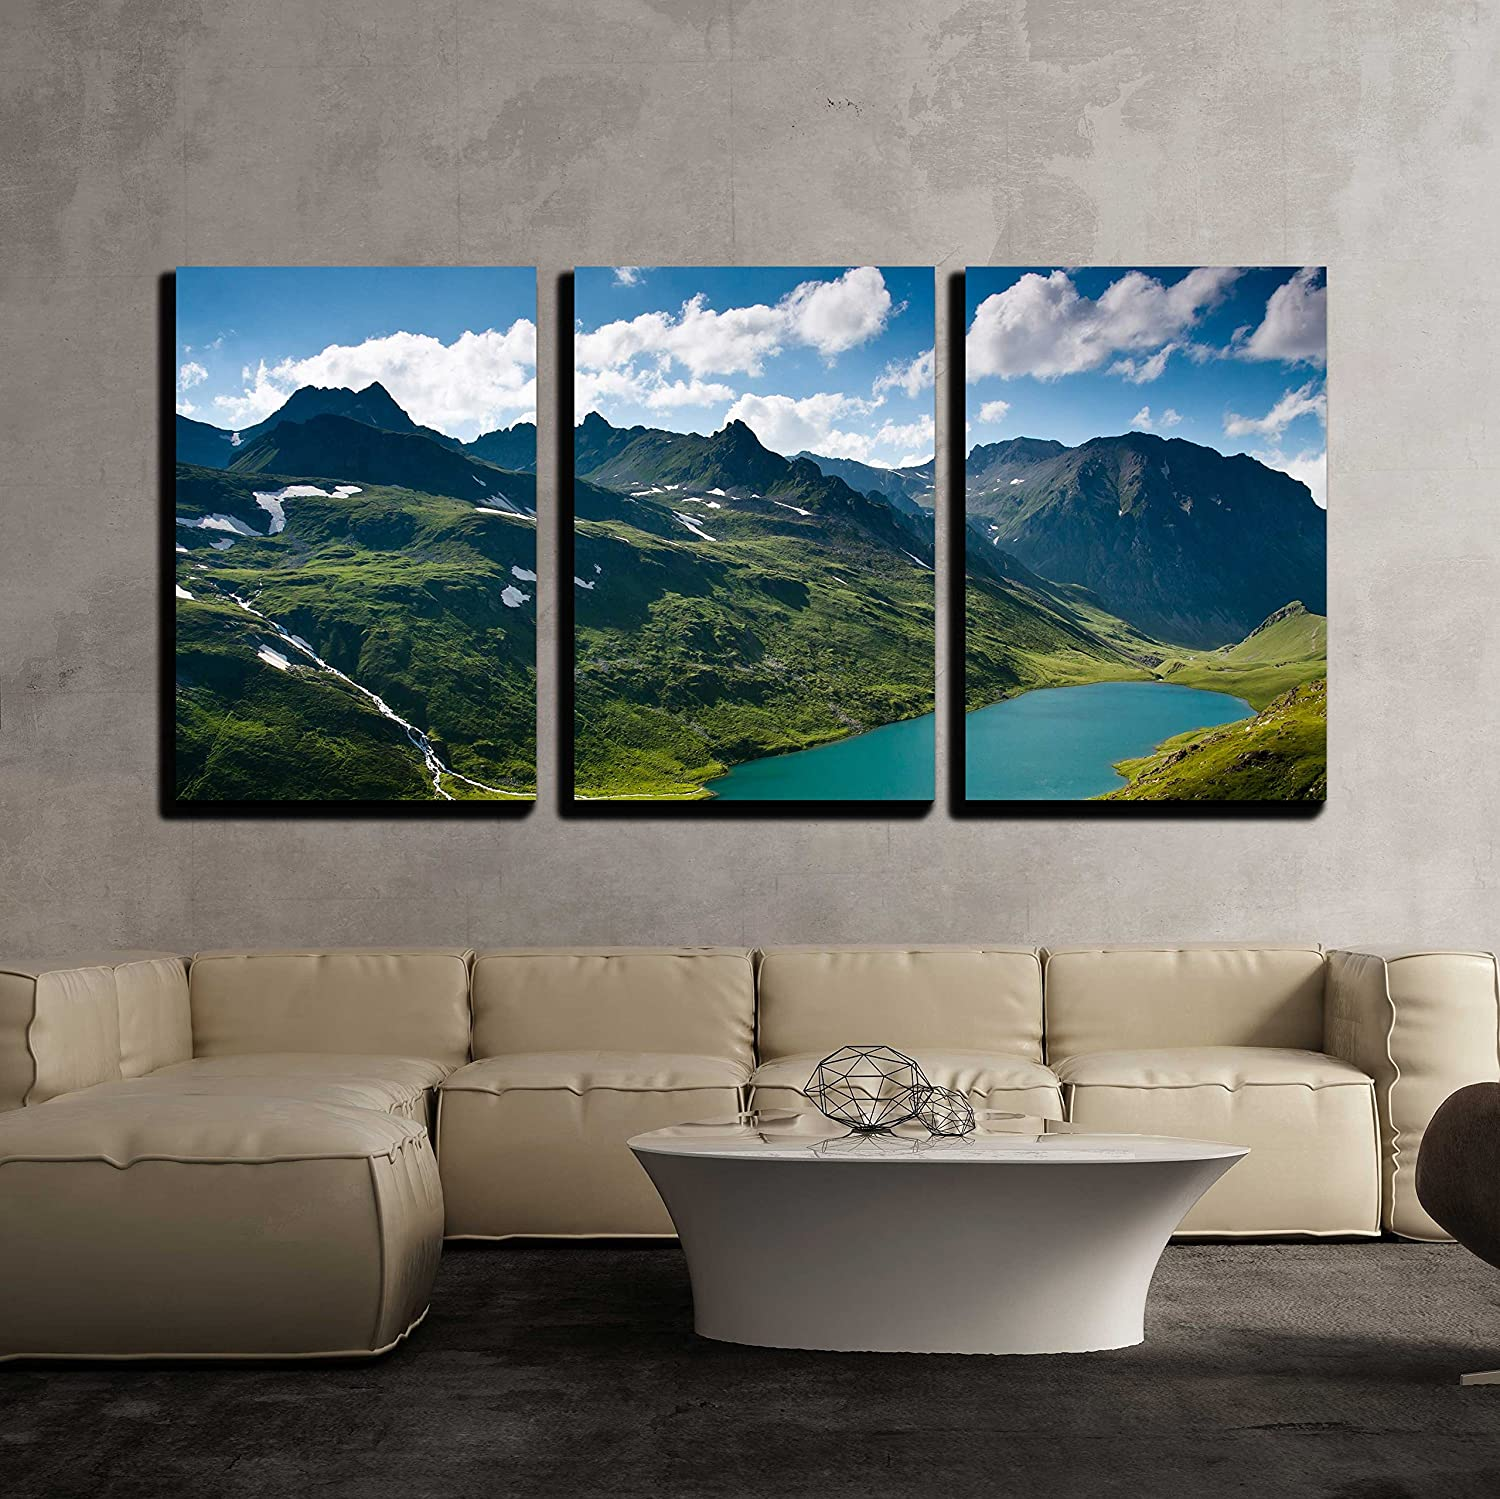 Wall26 art prints framed art canvas prints greeting wall26 3 piece canvas wall art mountain landscape in green wally with crystal river in caucasian mountains modern home decor stretched and framed kristyandbryce Images